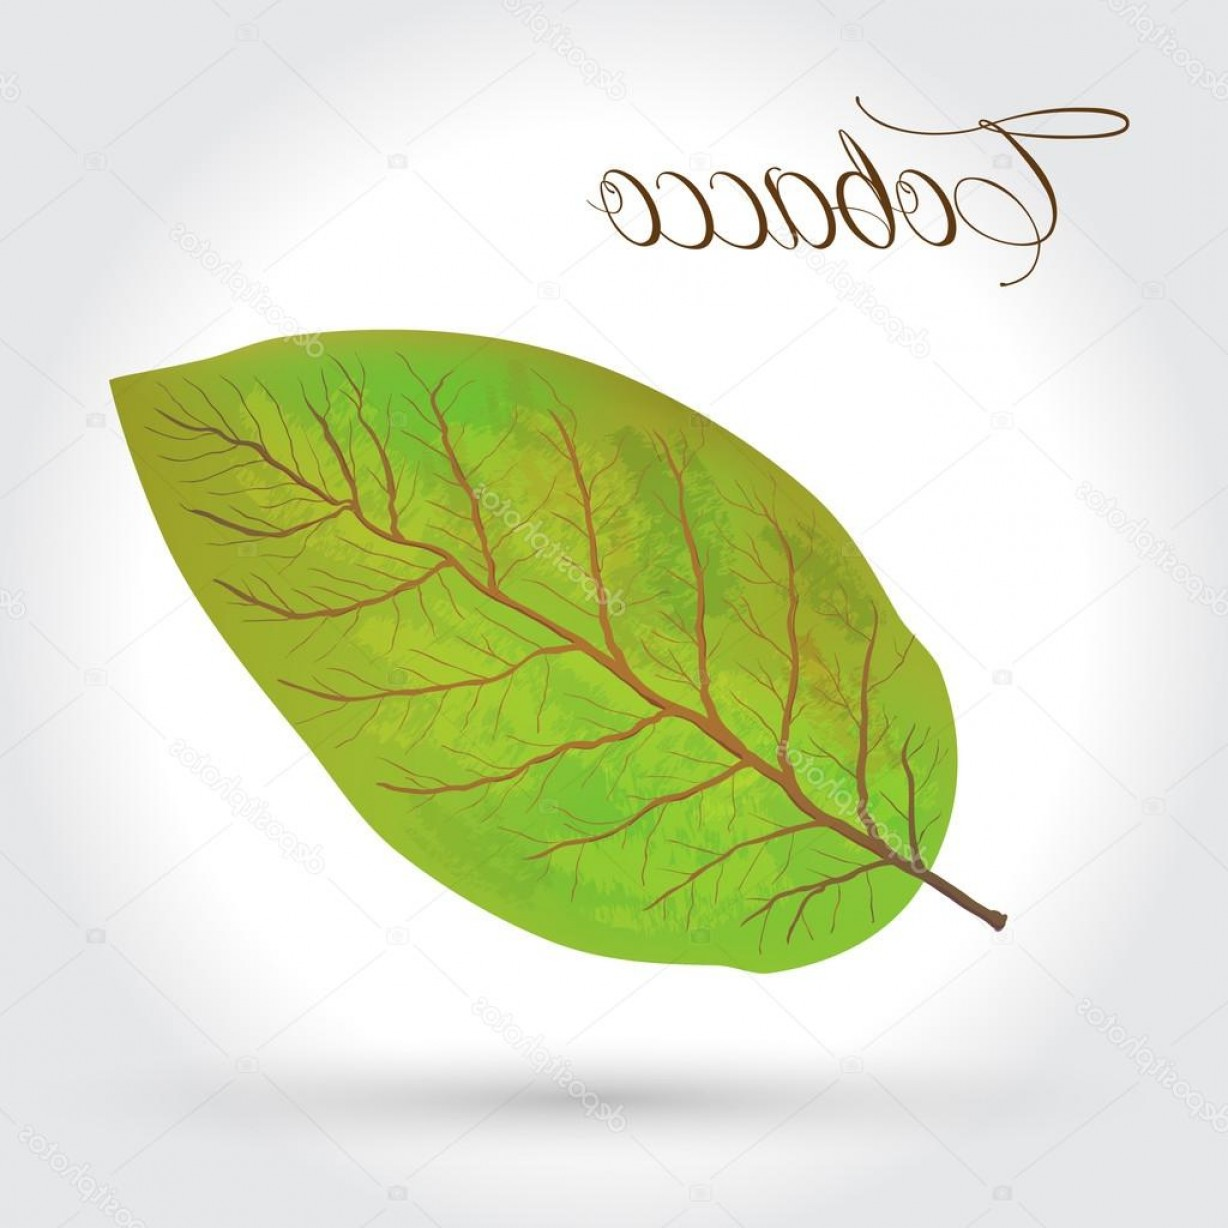 1228x1228 Stock Illustration Tobacco Leaves Vector Illustration Arenawp